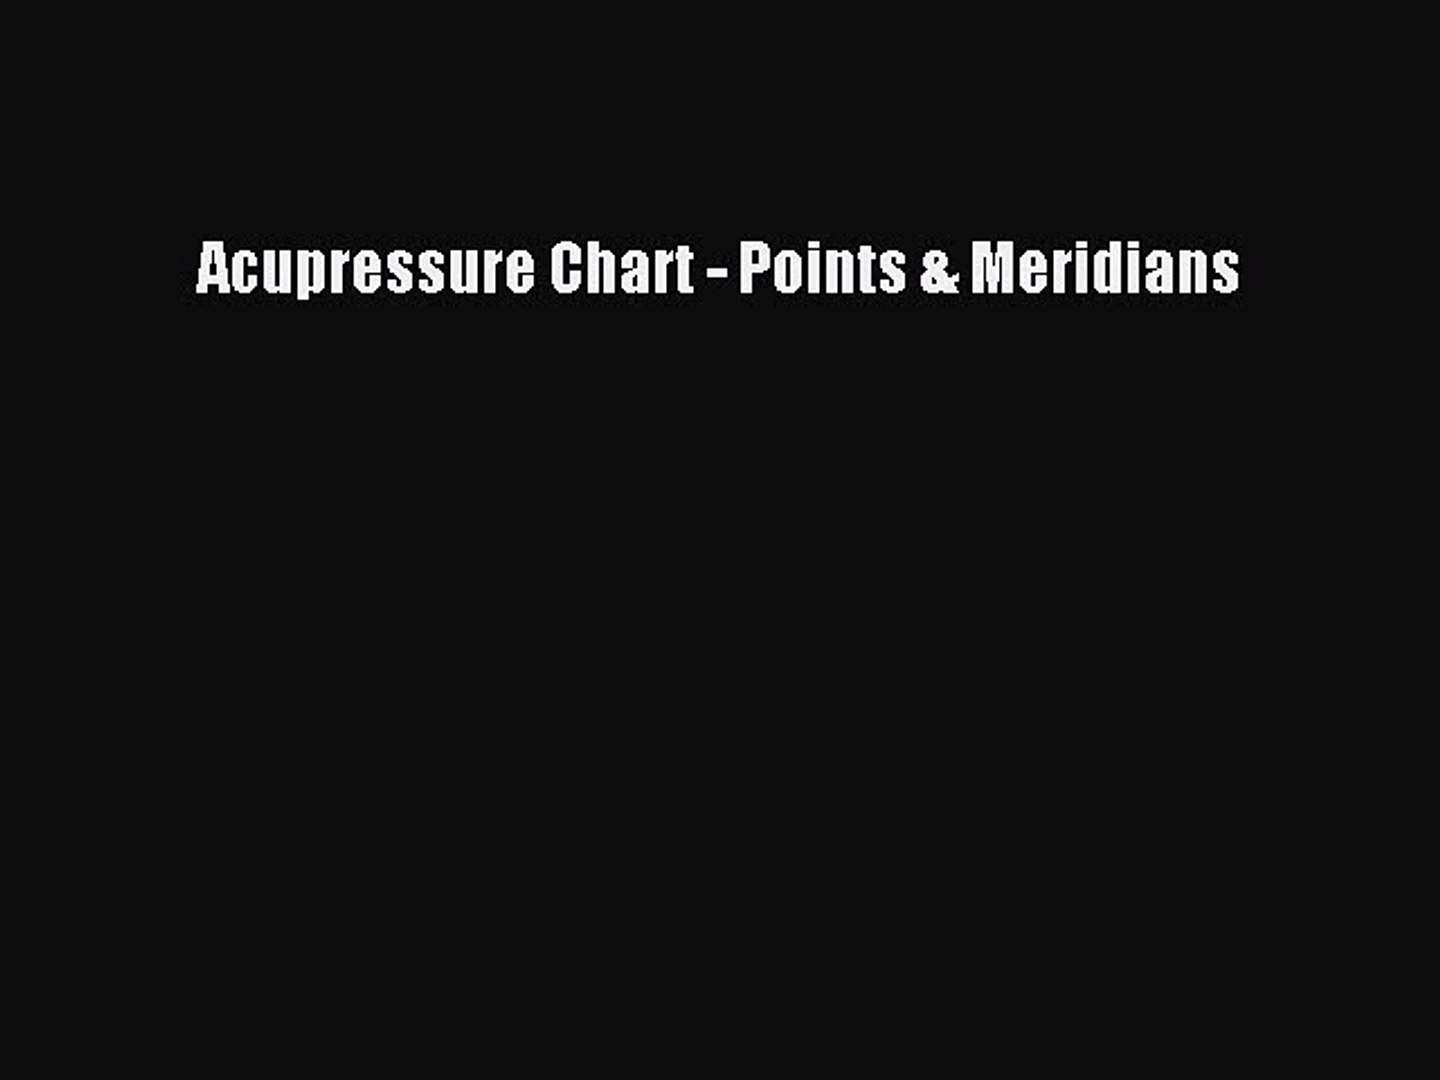 Acupressure Chart - Points & Meridians Free Download Book